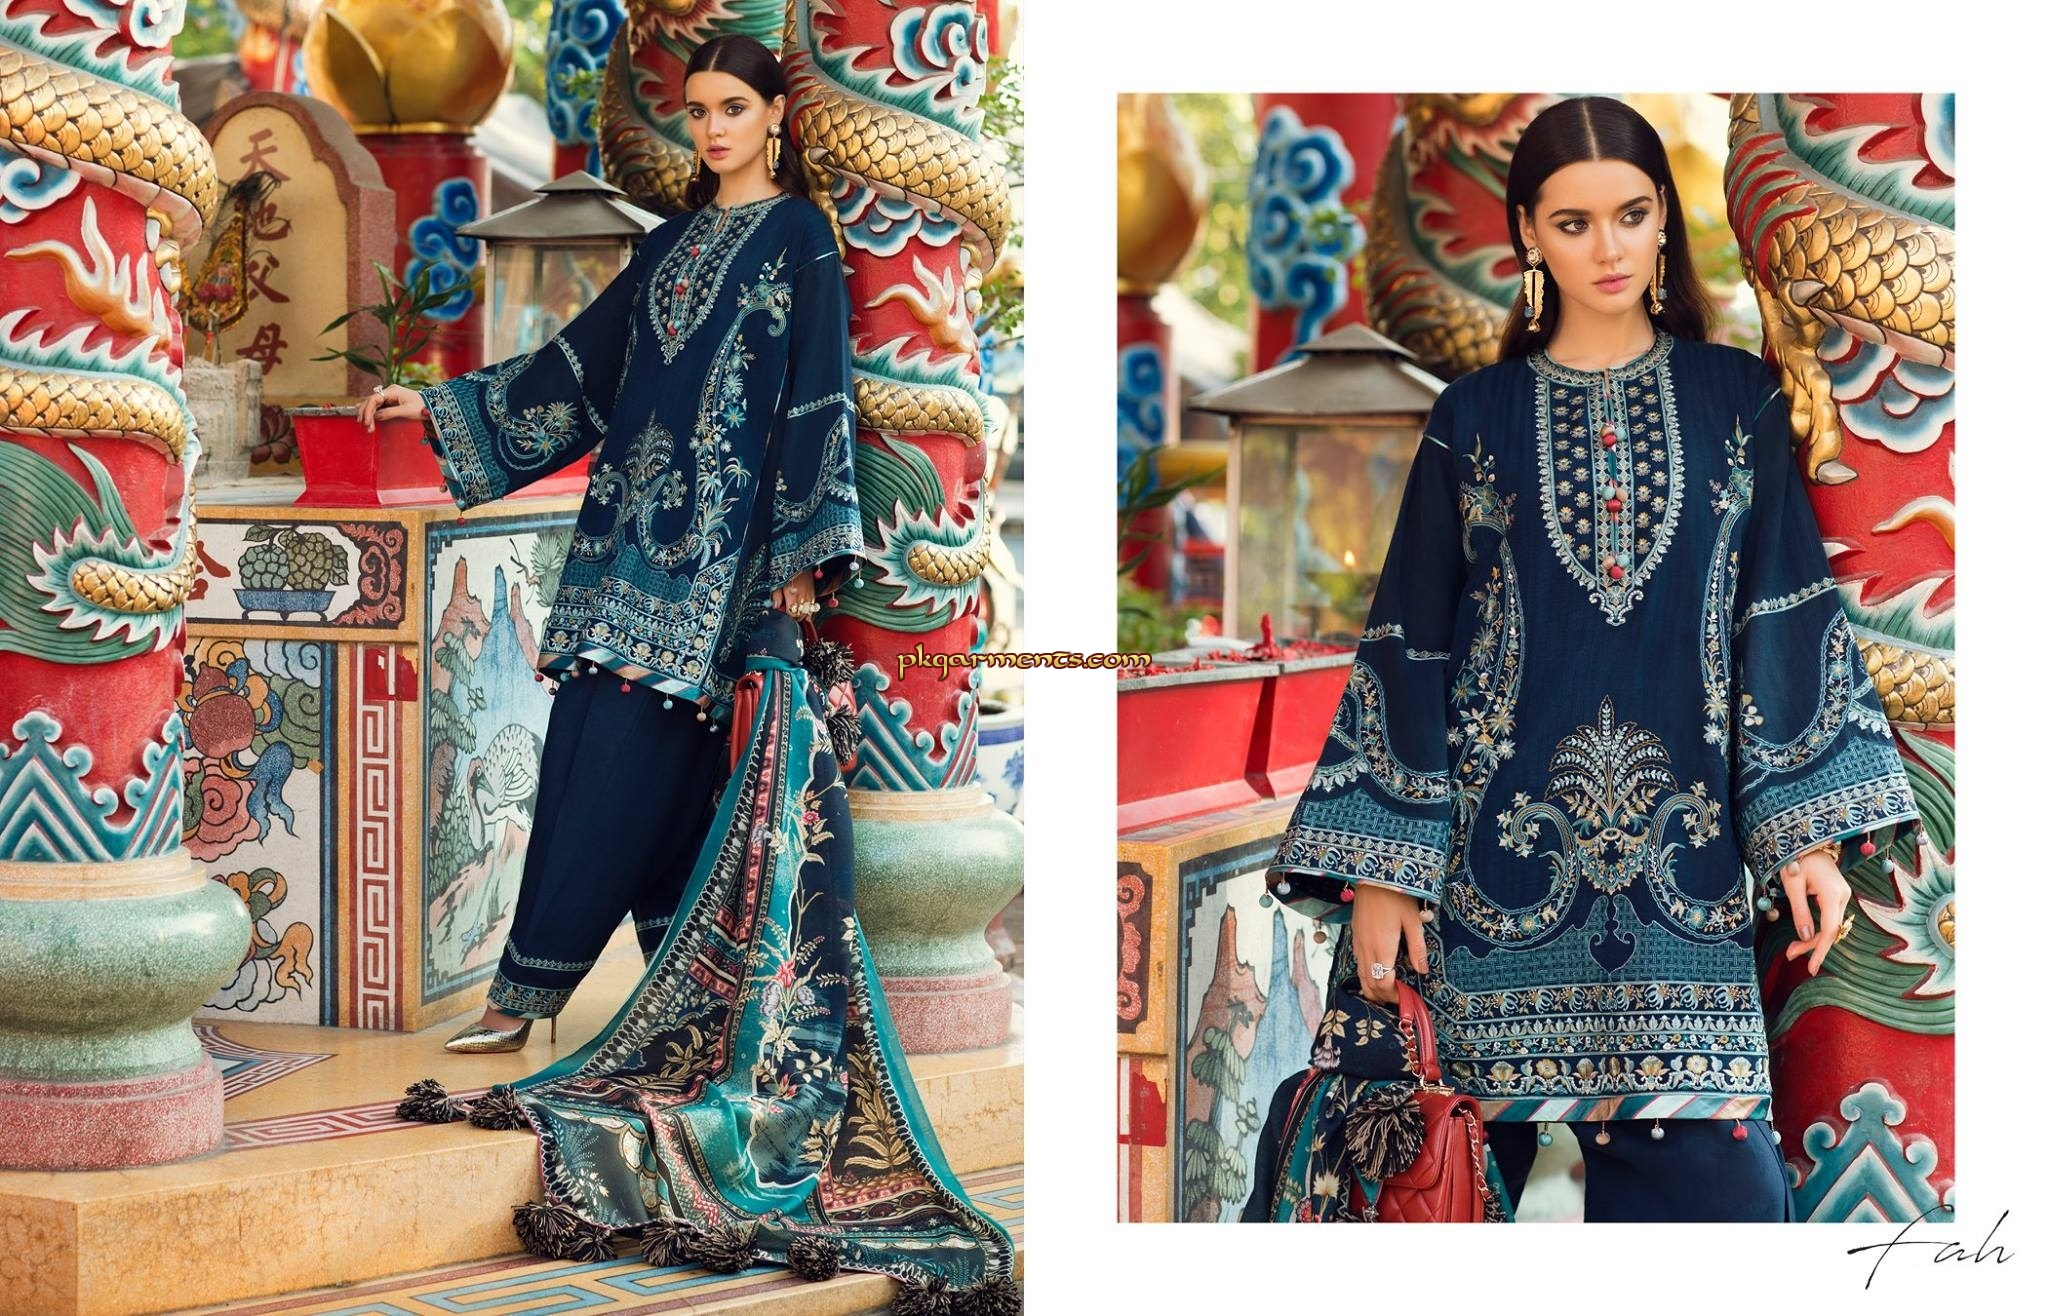 cc620ffd22 Digital Printed Shawl (Pure Wool) 2.50 meters Embroidered Jacquard Shirt  Front 1.25 meters Jacquard